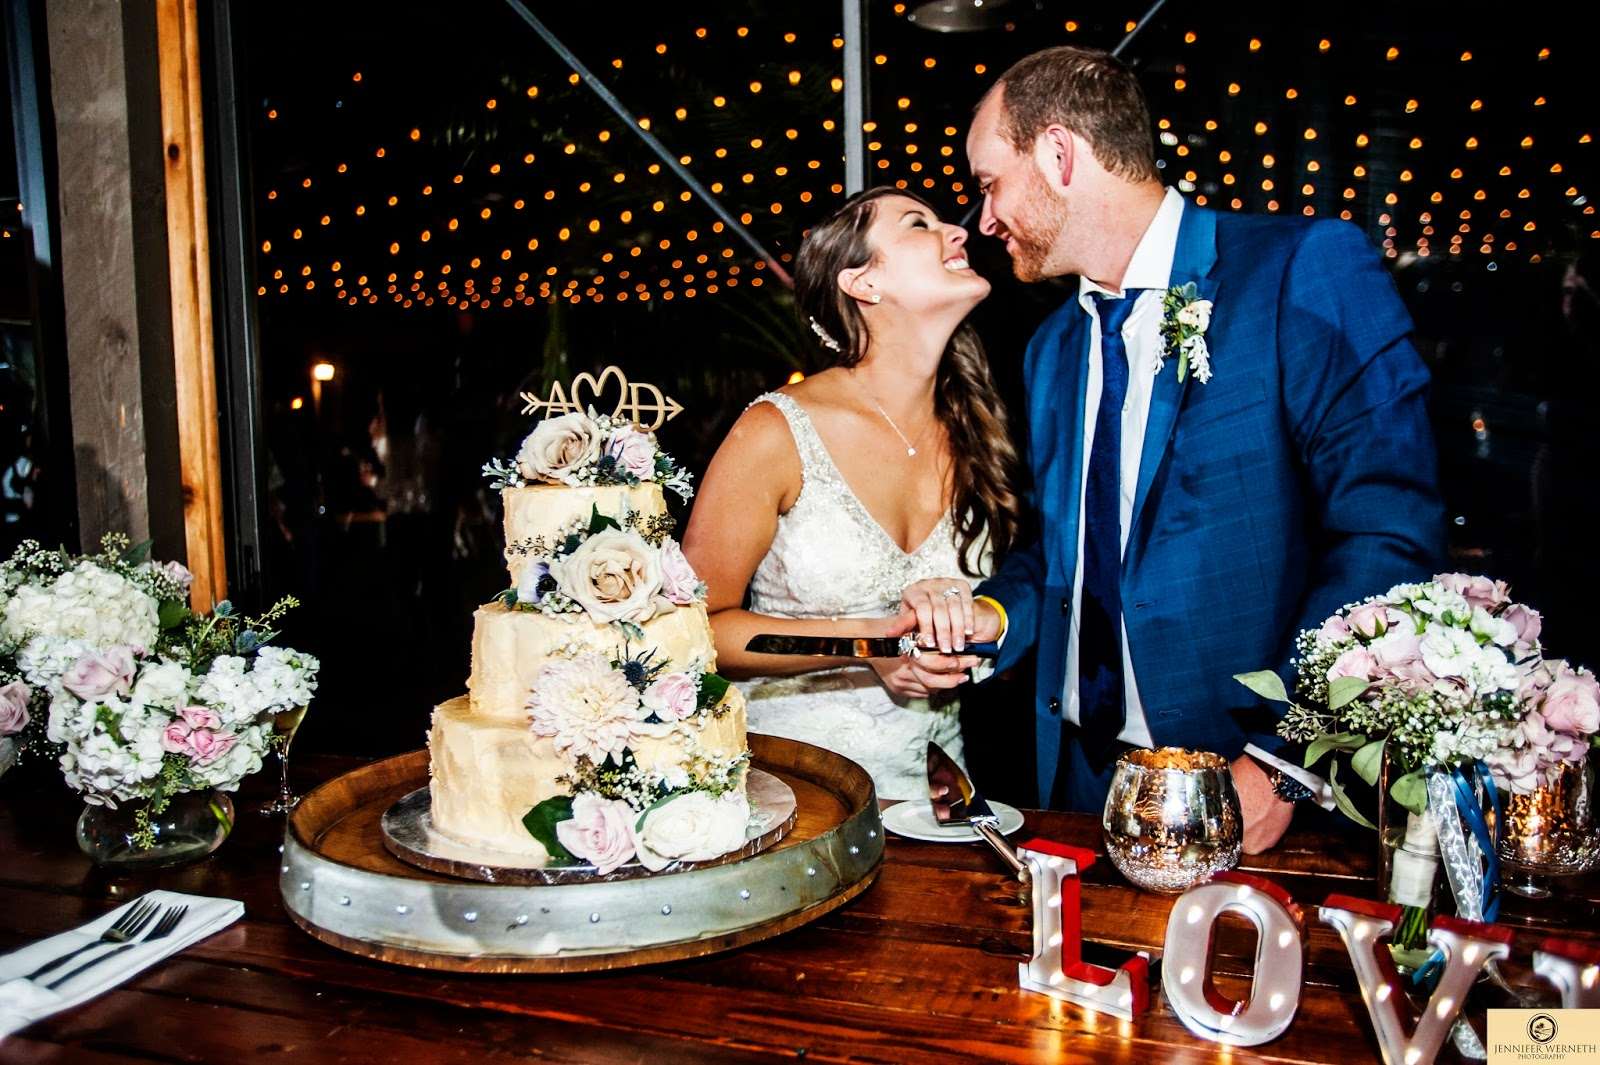 Bride and groom laughing at each other during cake cutting